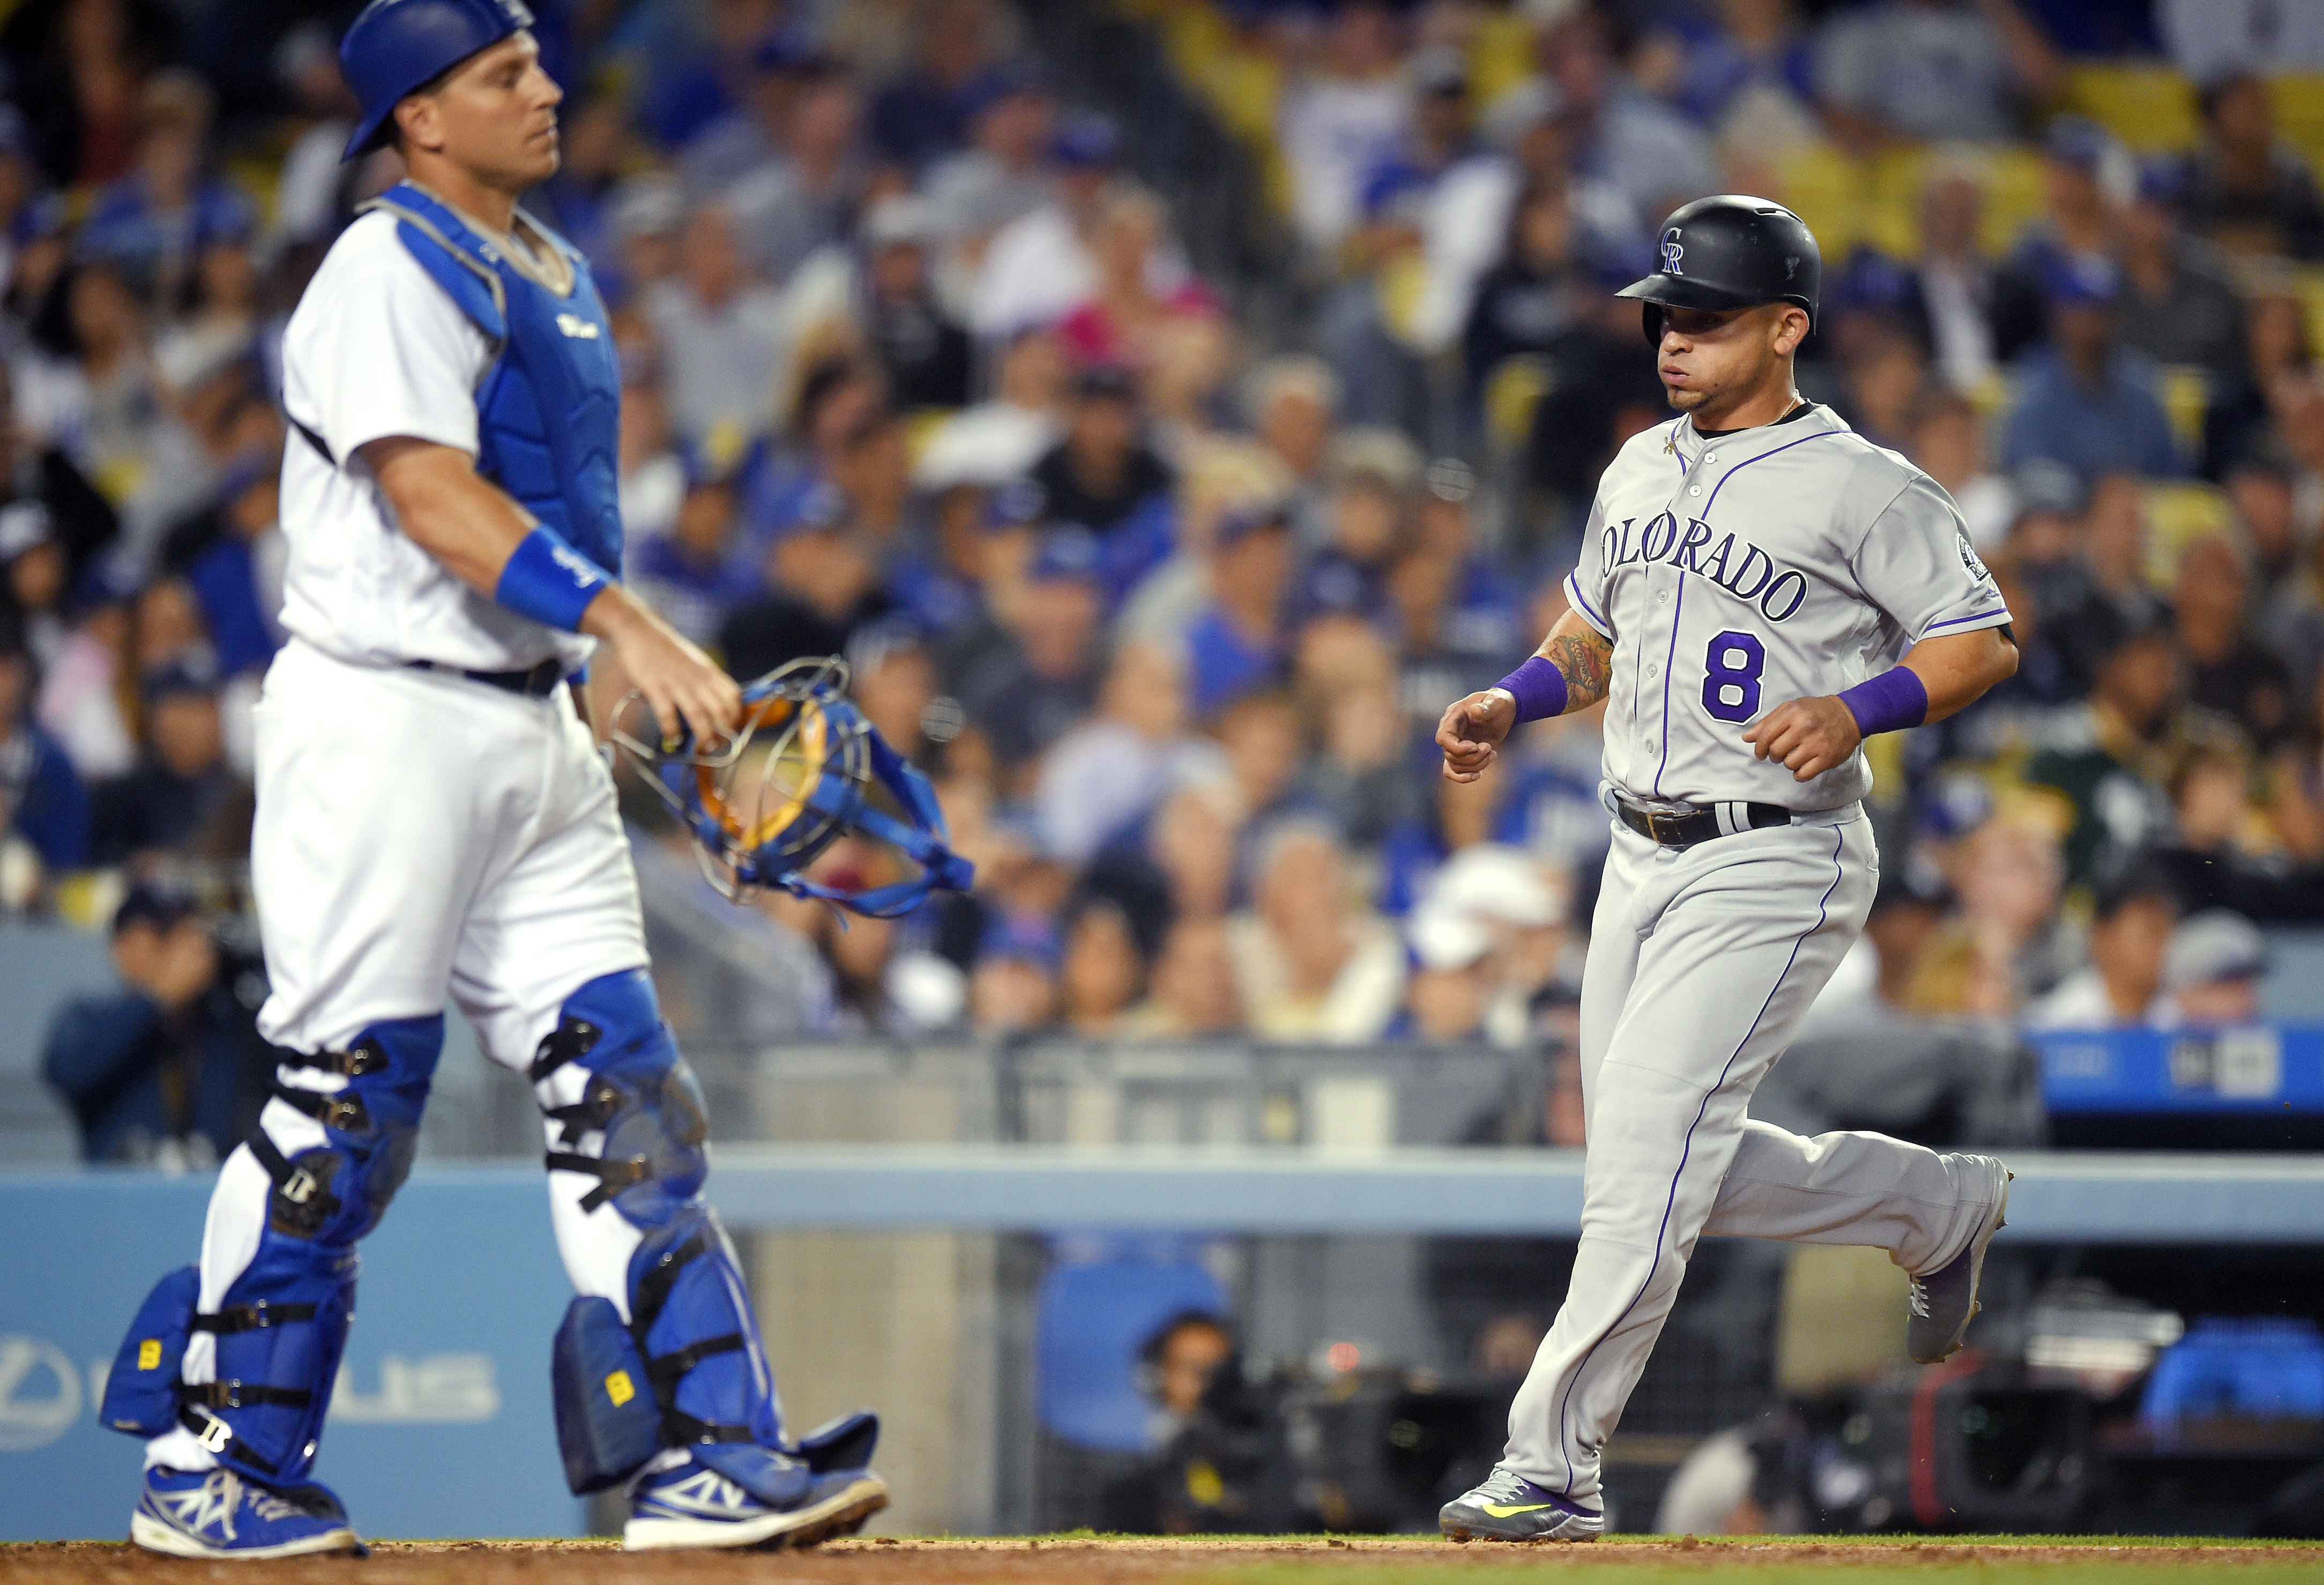 Los Angeles Dodgers' Bob Geren, right, scores on a single by Daniel Descalso as Los Angeles Dodgers catcher A.J. Ellis stands at the plate during the seventh inning of a baseball game, Wednesday, June 8, 2016, in Los Angeles. (AP Photo/Mark J. Terrill)